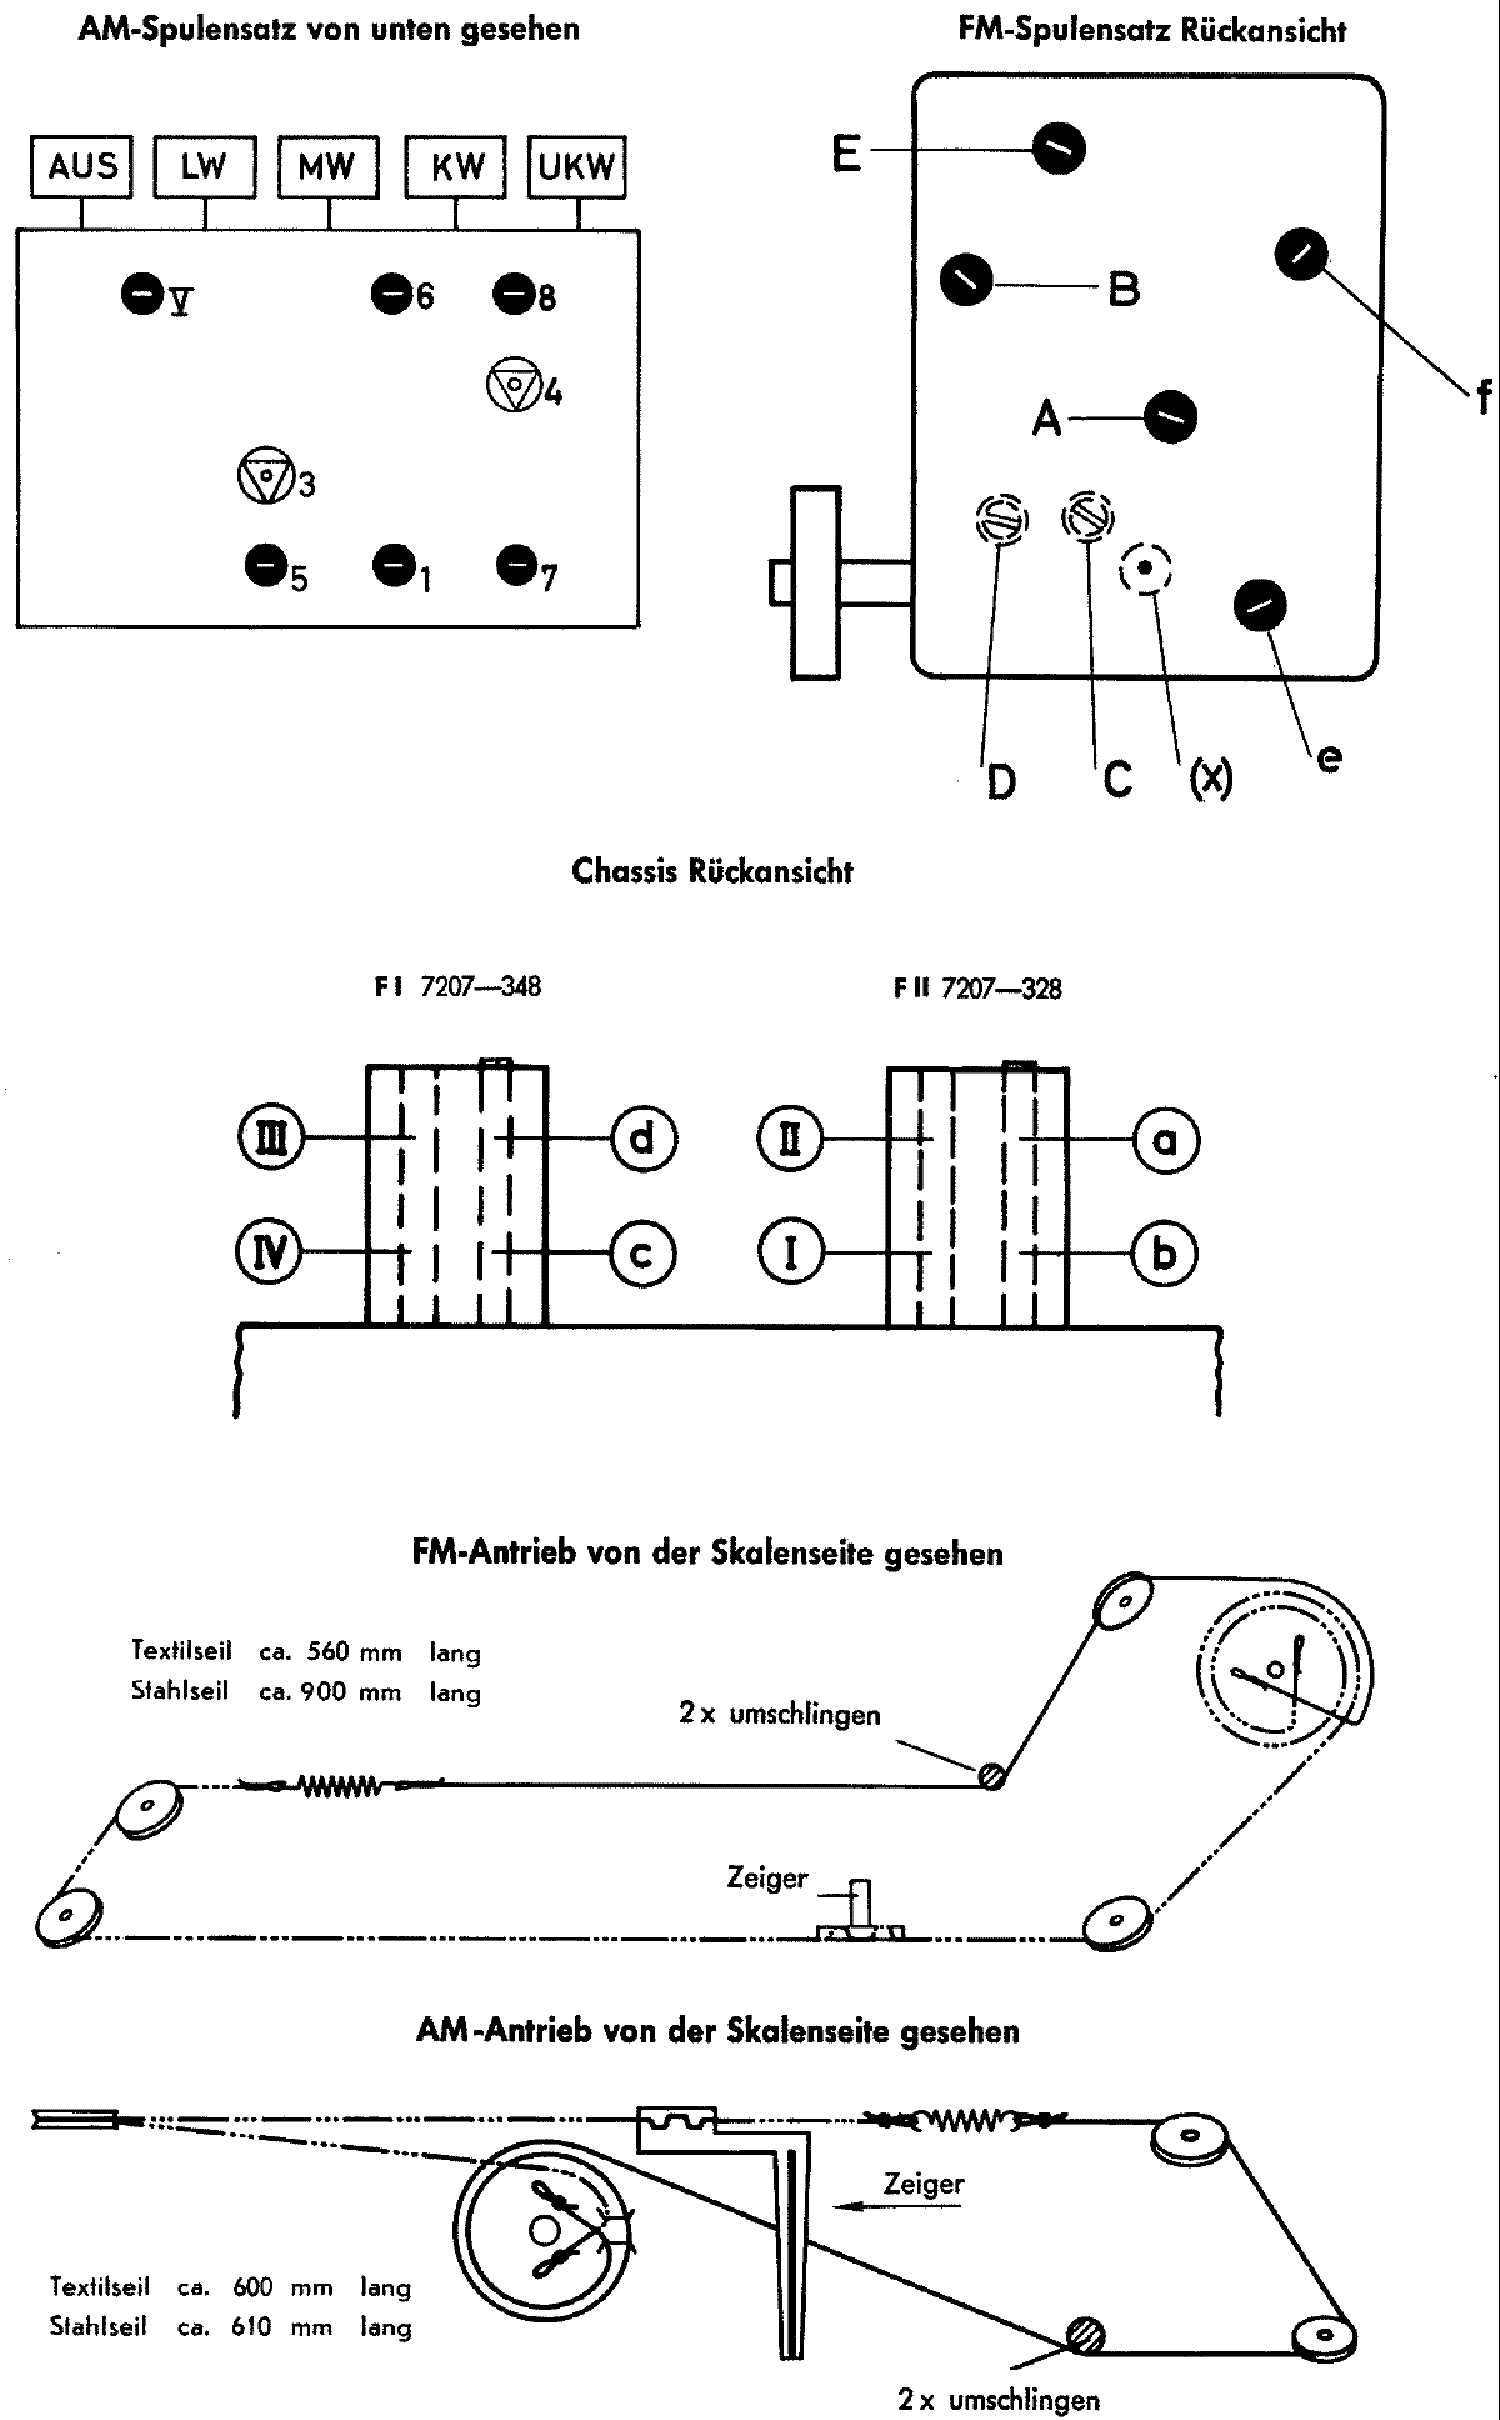 GRUNDIG 3036 3037 3039 AM-FM RADIO 1959 SCH service manual (2nd page)